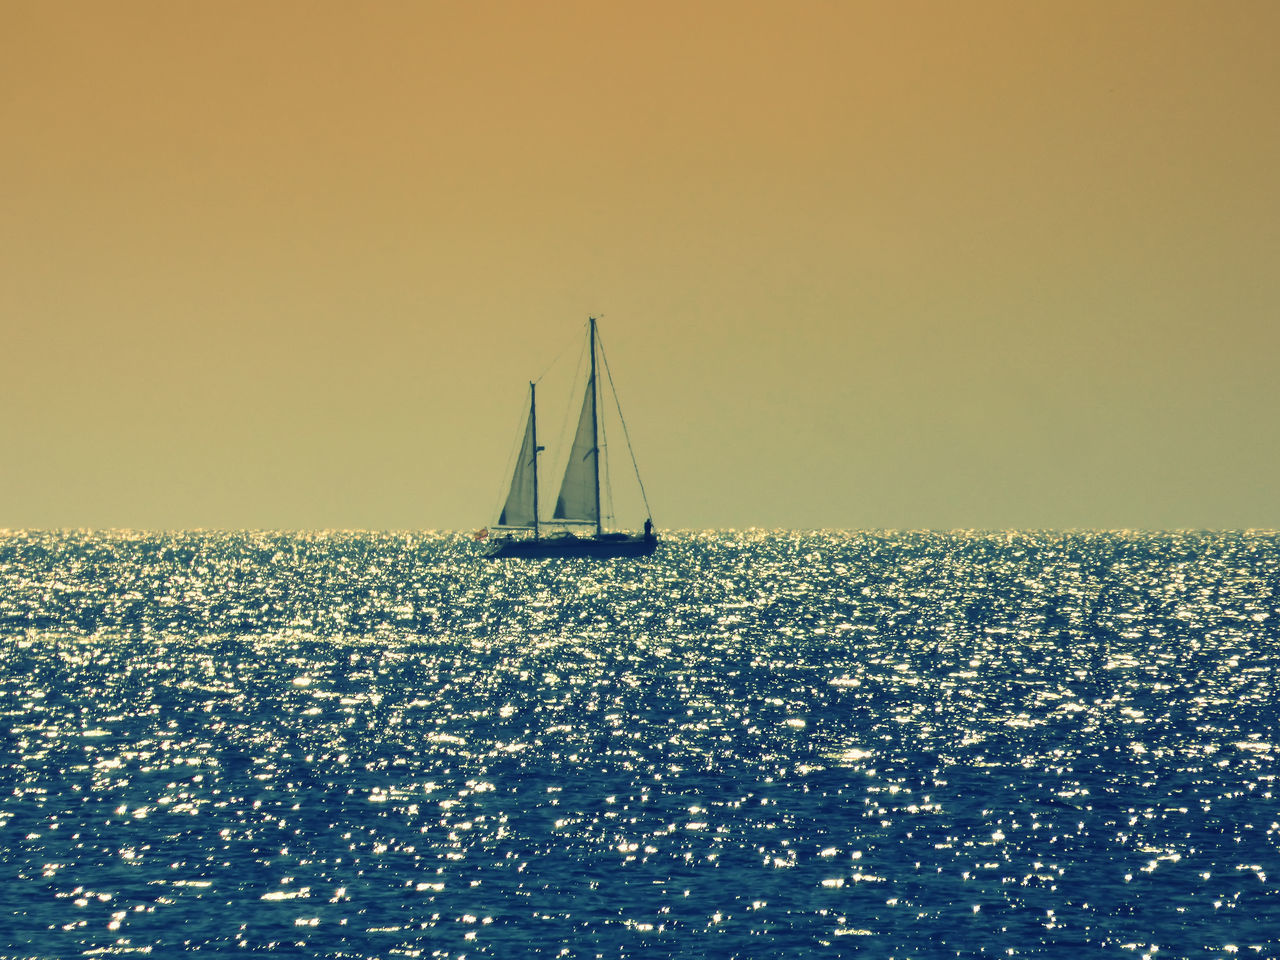 sea, sailboat, water, horizon over water, tranquility, waterfront, copy space, scenics, tranquil scene, rippled, clear sky, outdoors, nature, no people, sailing, sky, sunlight, beauty in nature, nautical vessel, sunset, day, mast, yacht, sailing ship